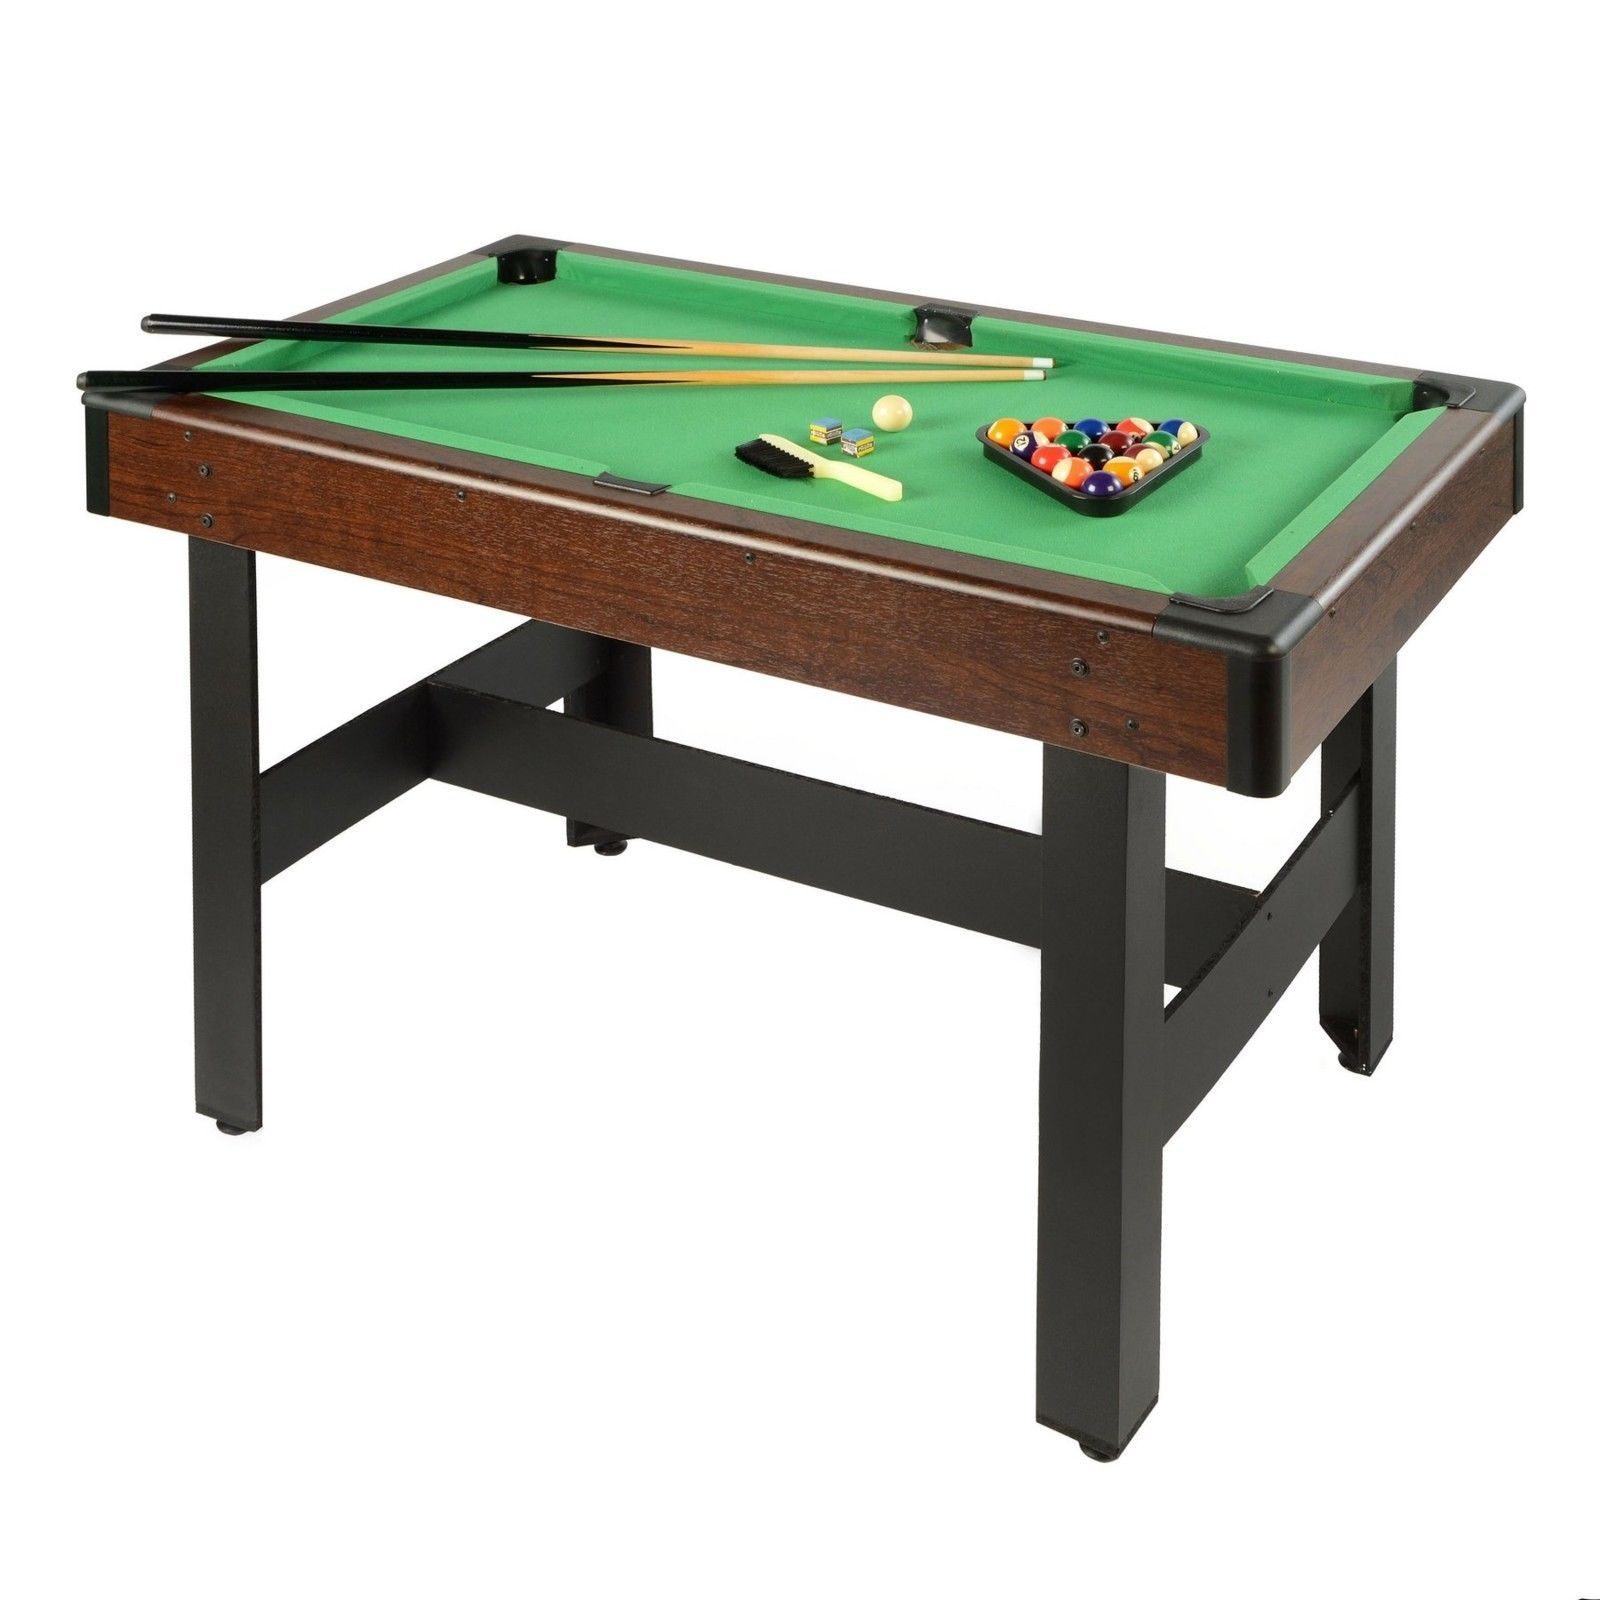 Billiards Pool Table With Accessories In Long In High In - How wide is a pool table